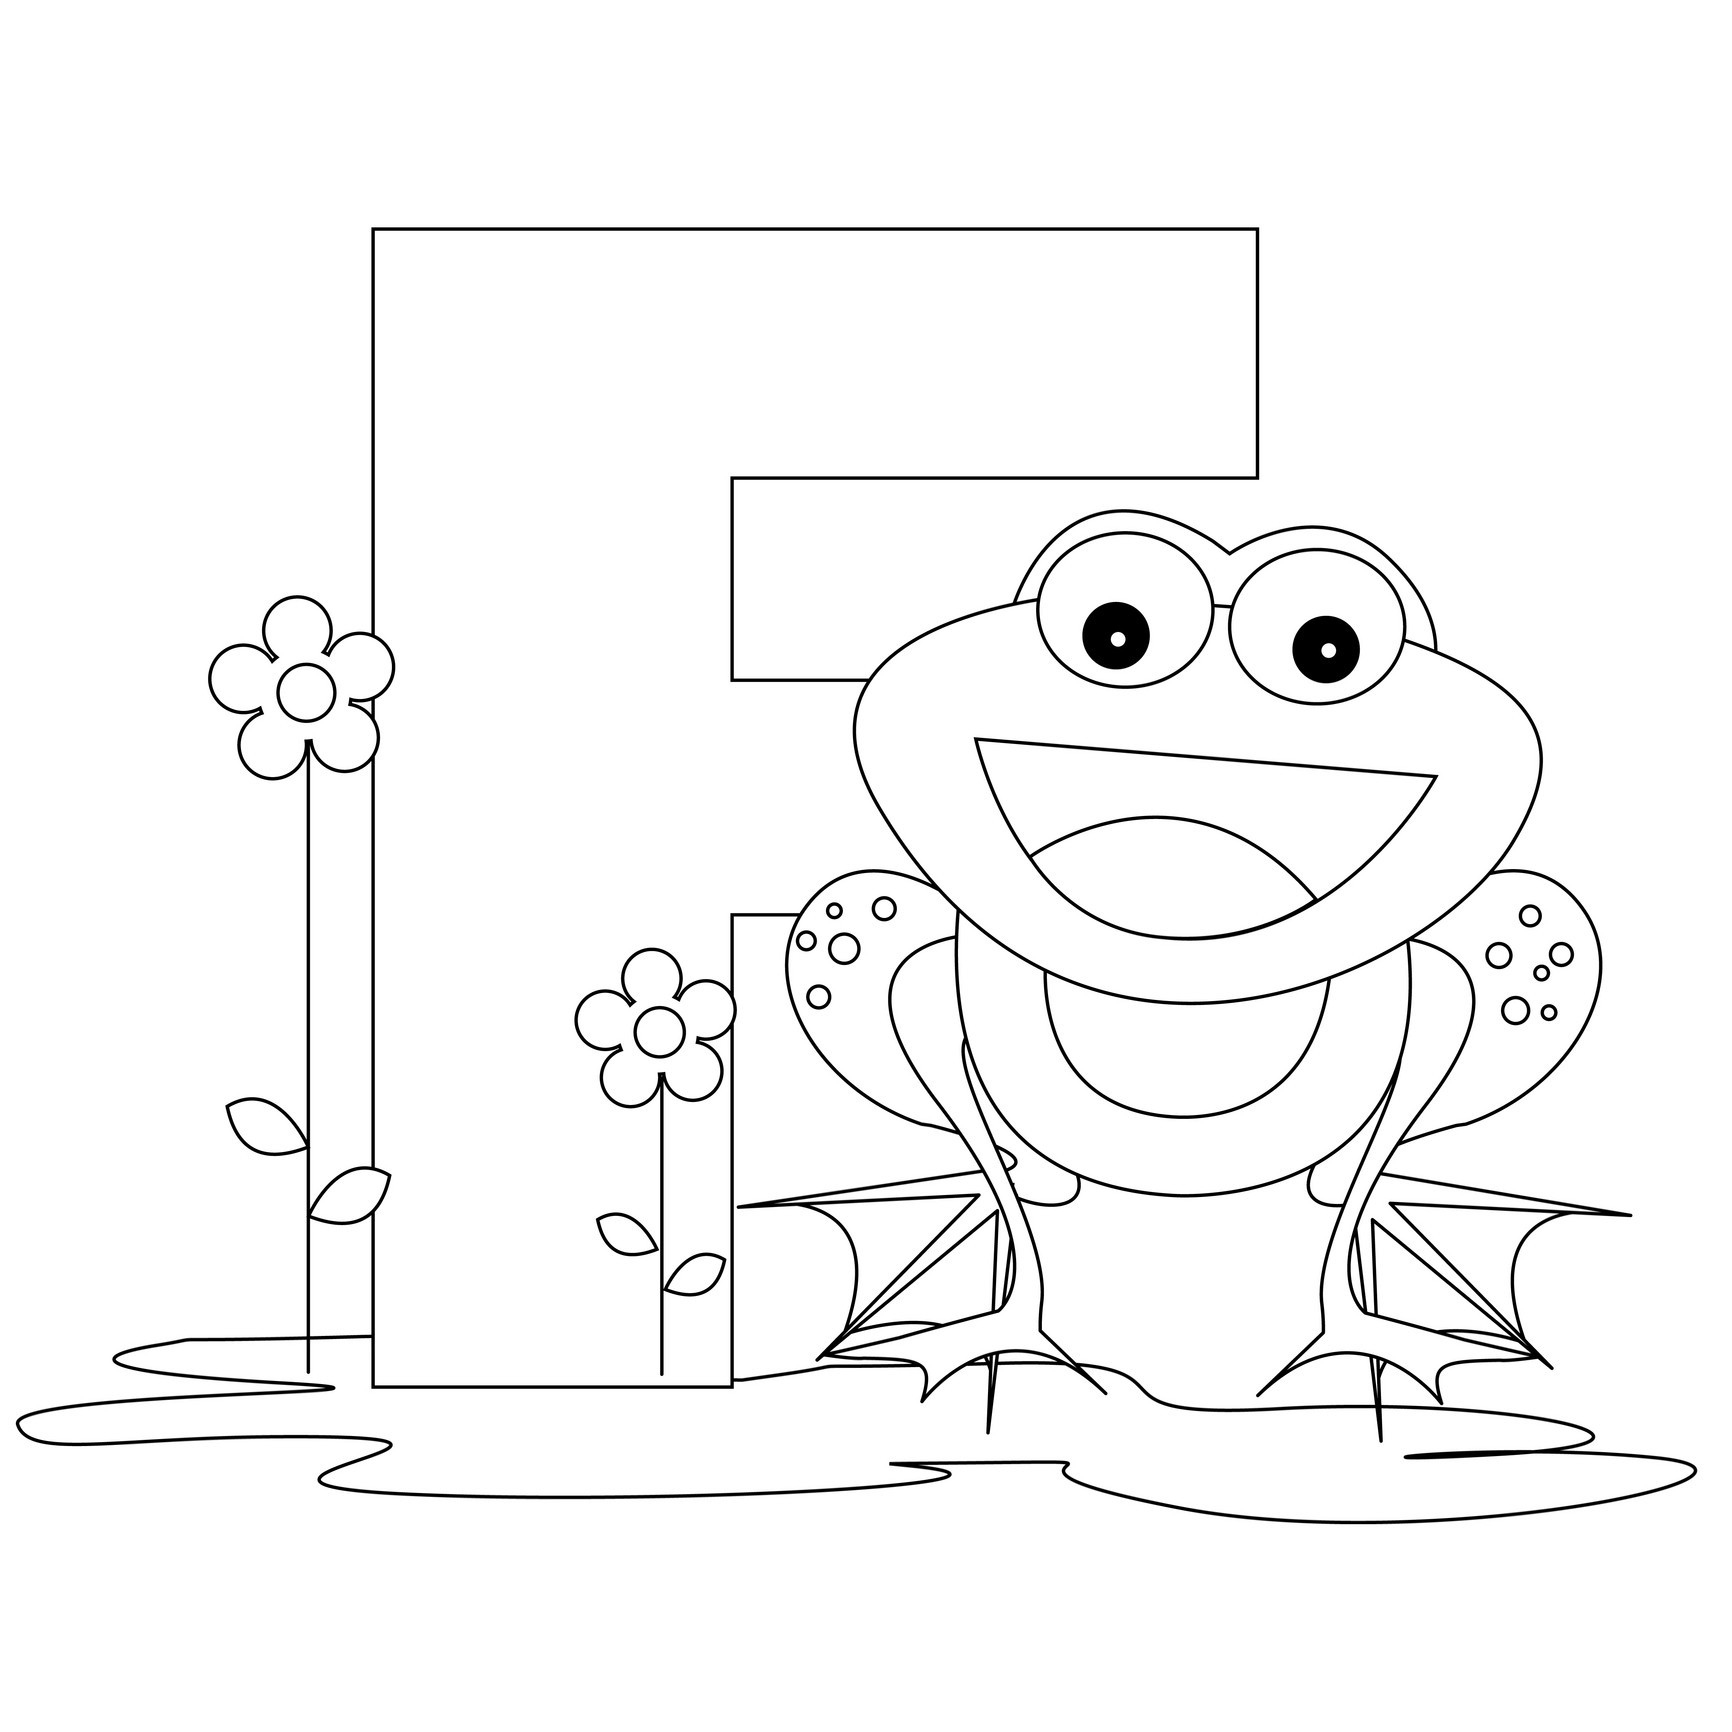 Coloring book pages letter m - Alphabet Coloring Pages Letter F